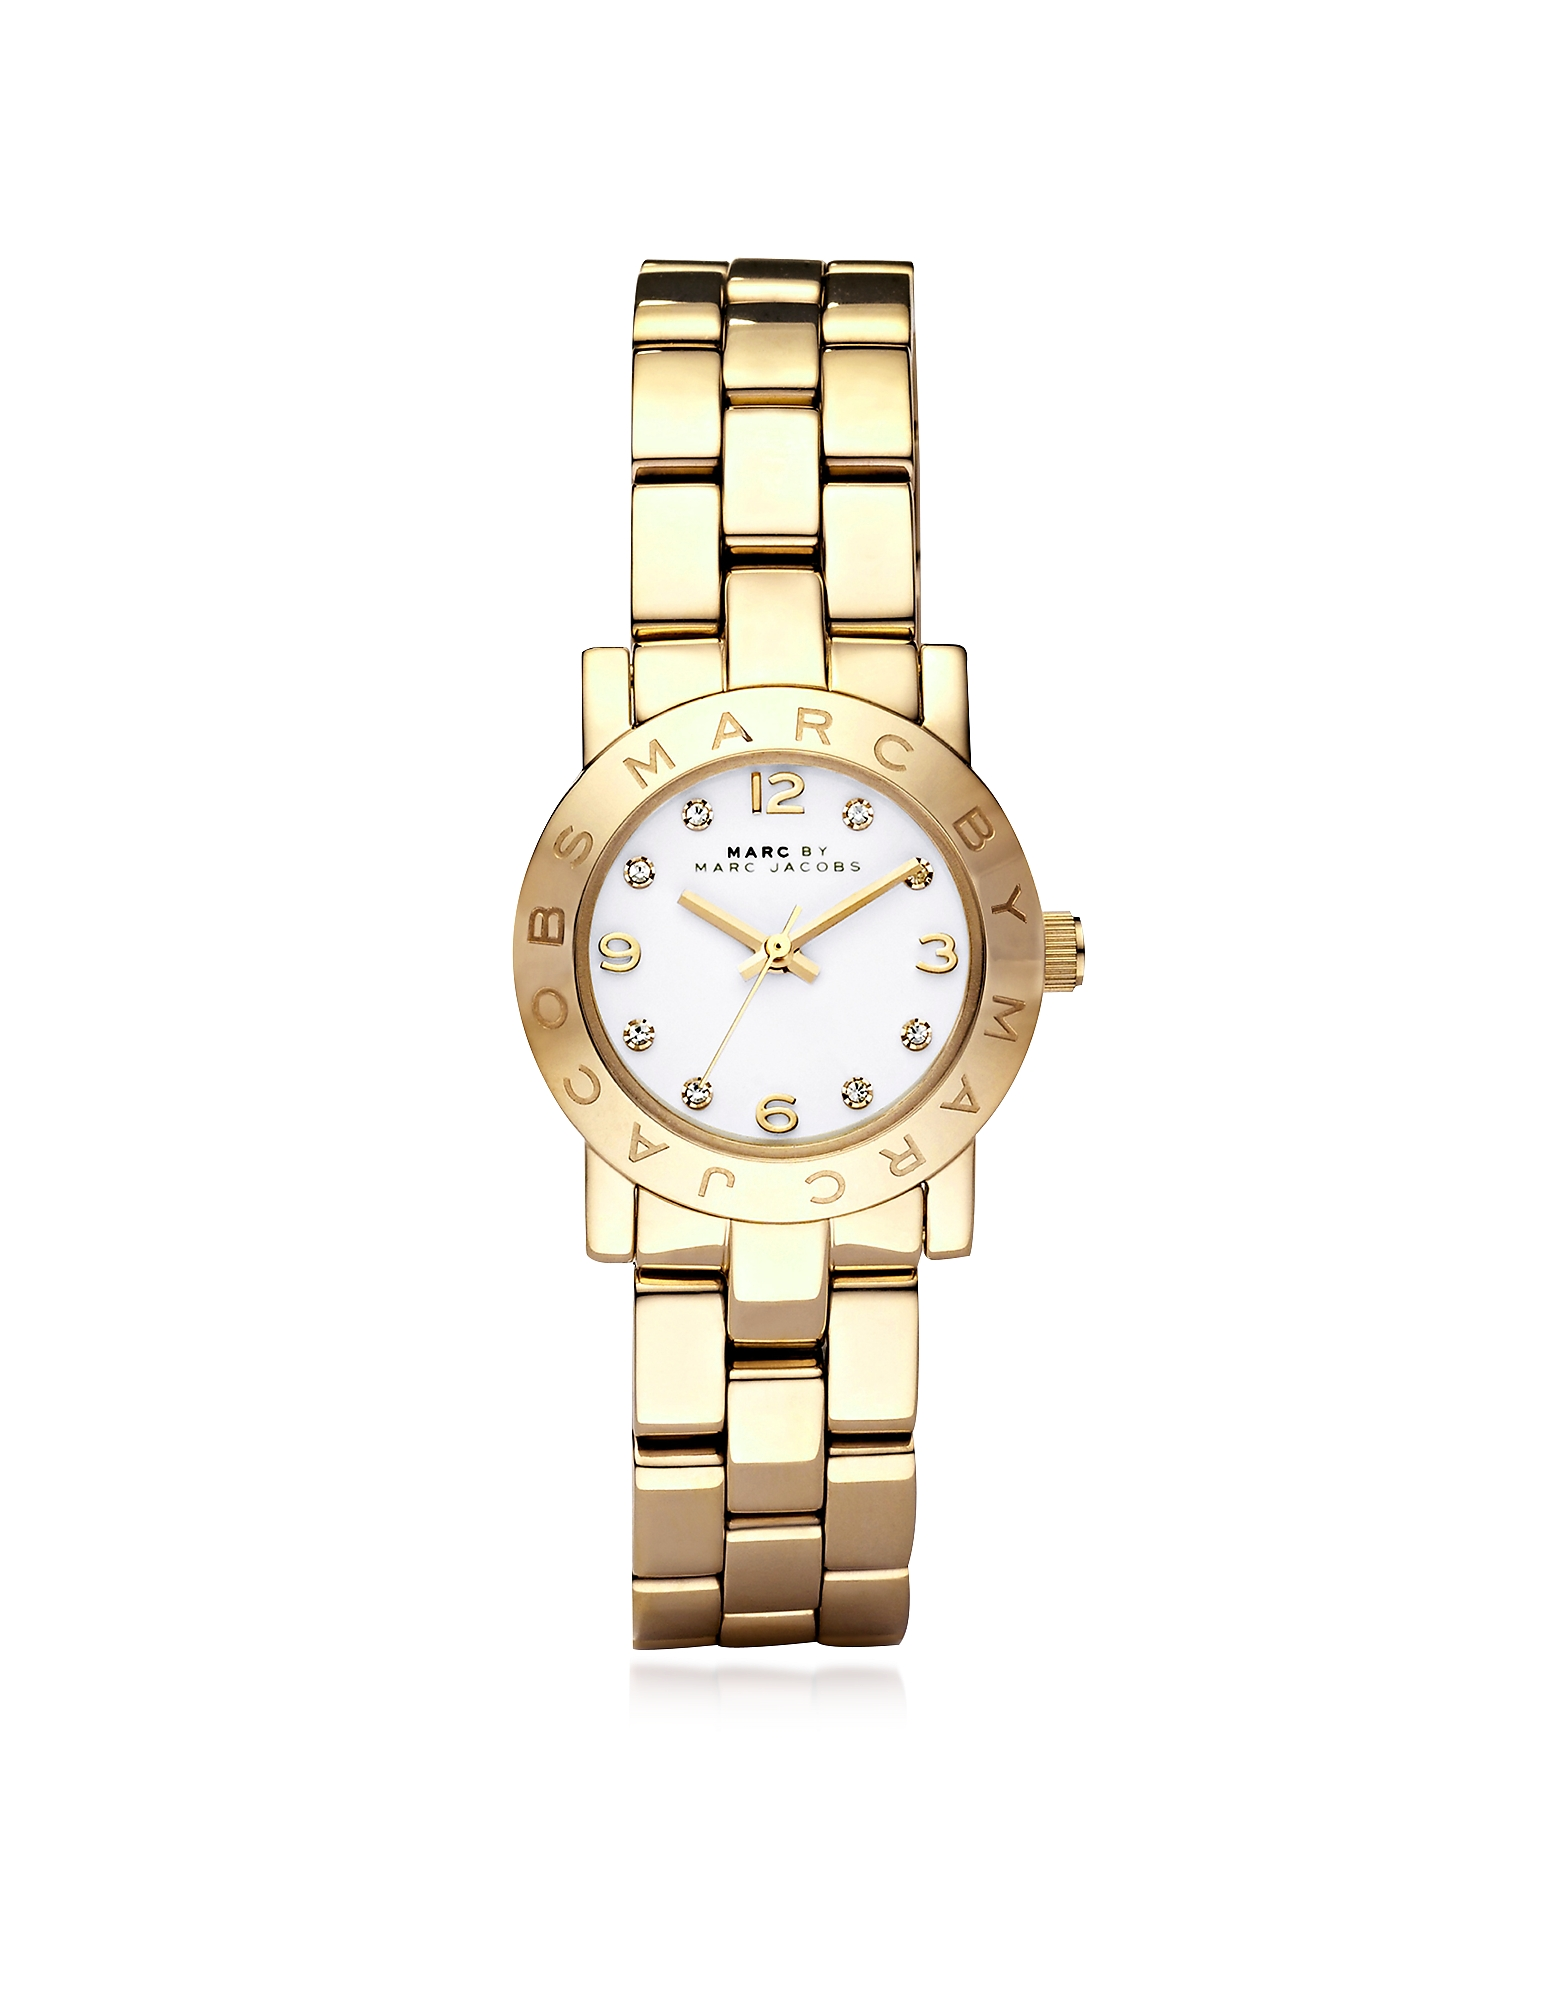 Marc by Marc Jacobs Women's Watches, Mini Amy 26 MM Gold Tone Stainless Steel Women's Watch